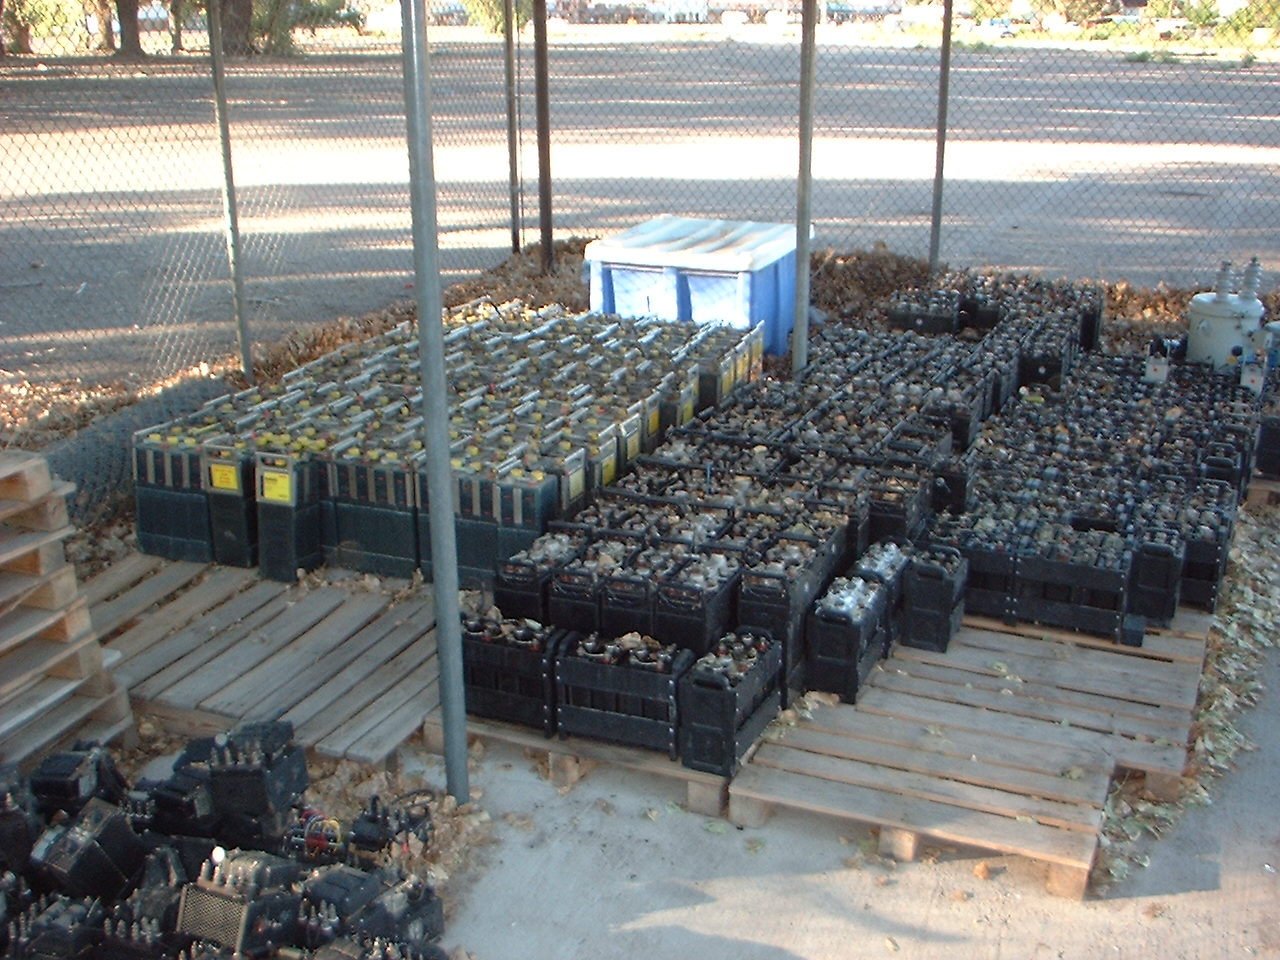 Toyota Setting Up Recycling Facilities For Old Nickel Metal Batteries From Hybrids The Green Optimistic